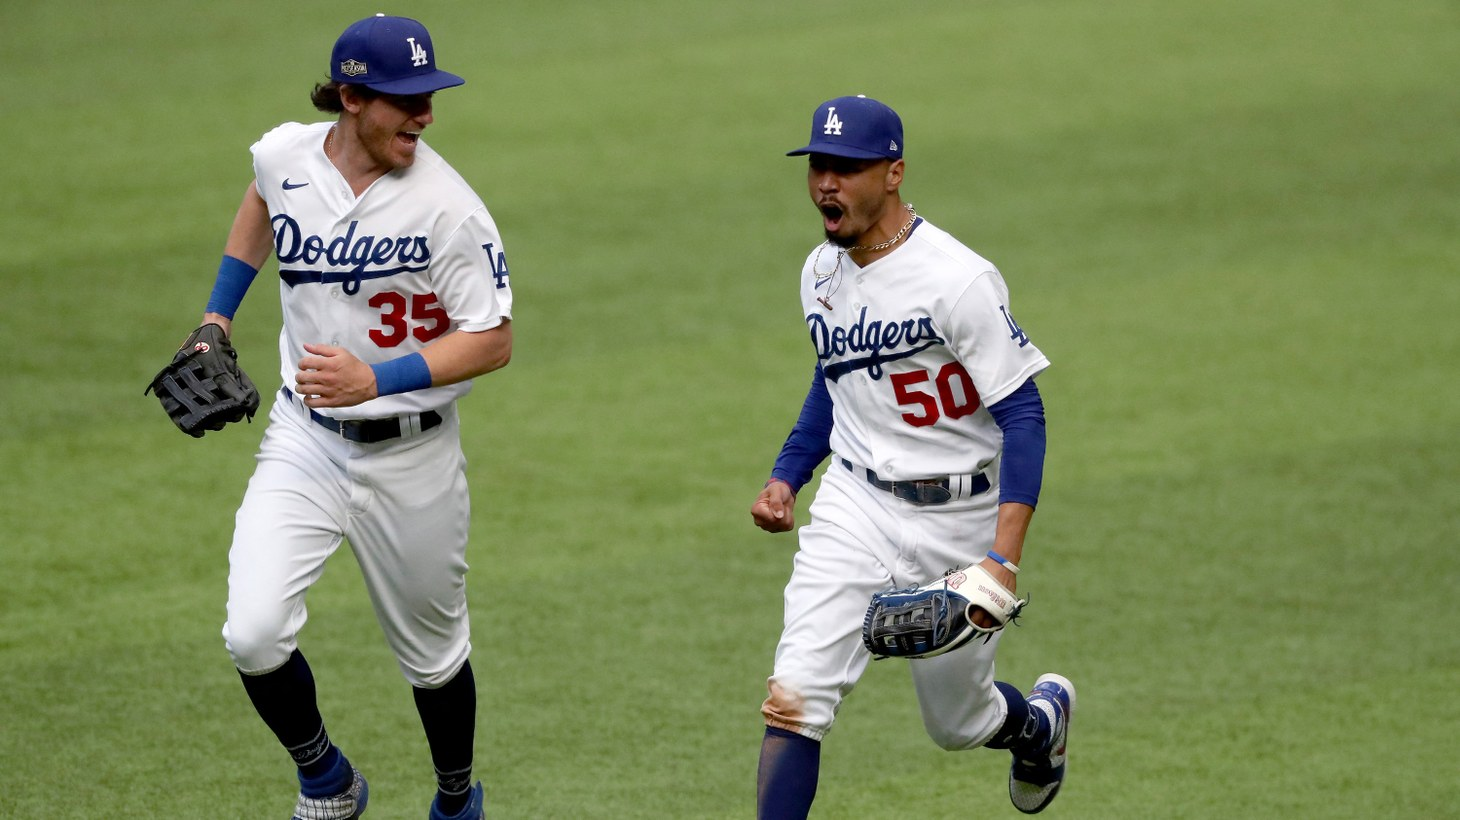 Los Angeles Dodgers right fielder Mookie Betts, right, celebrates with center fielder Cody Bellinger after Betts made a catch against the outfield wall, robbing a home run from the Atlanta Braves' Marcell Ozuna during the fifth inning in game six of the National League Championship Series on Saturday, Oct. 17, 2020, at Globe Life Field in Arlington, Texas. The Dodgers won, 3-1, to force a Game 7 on Sunday.